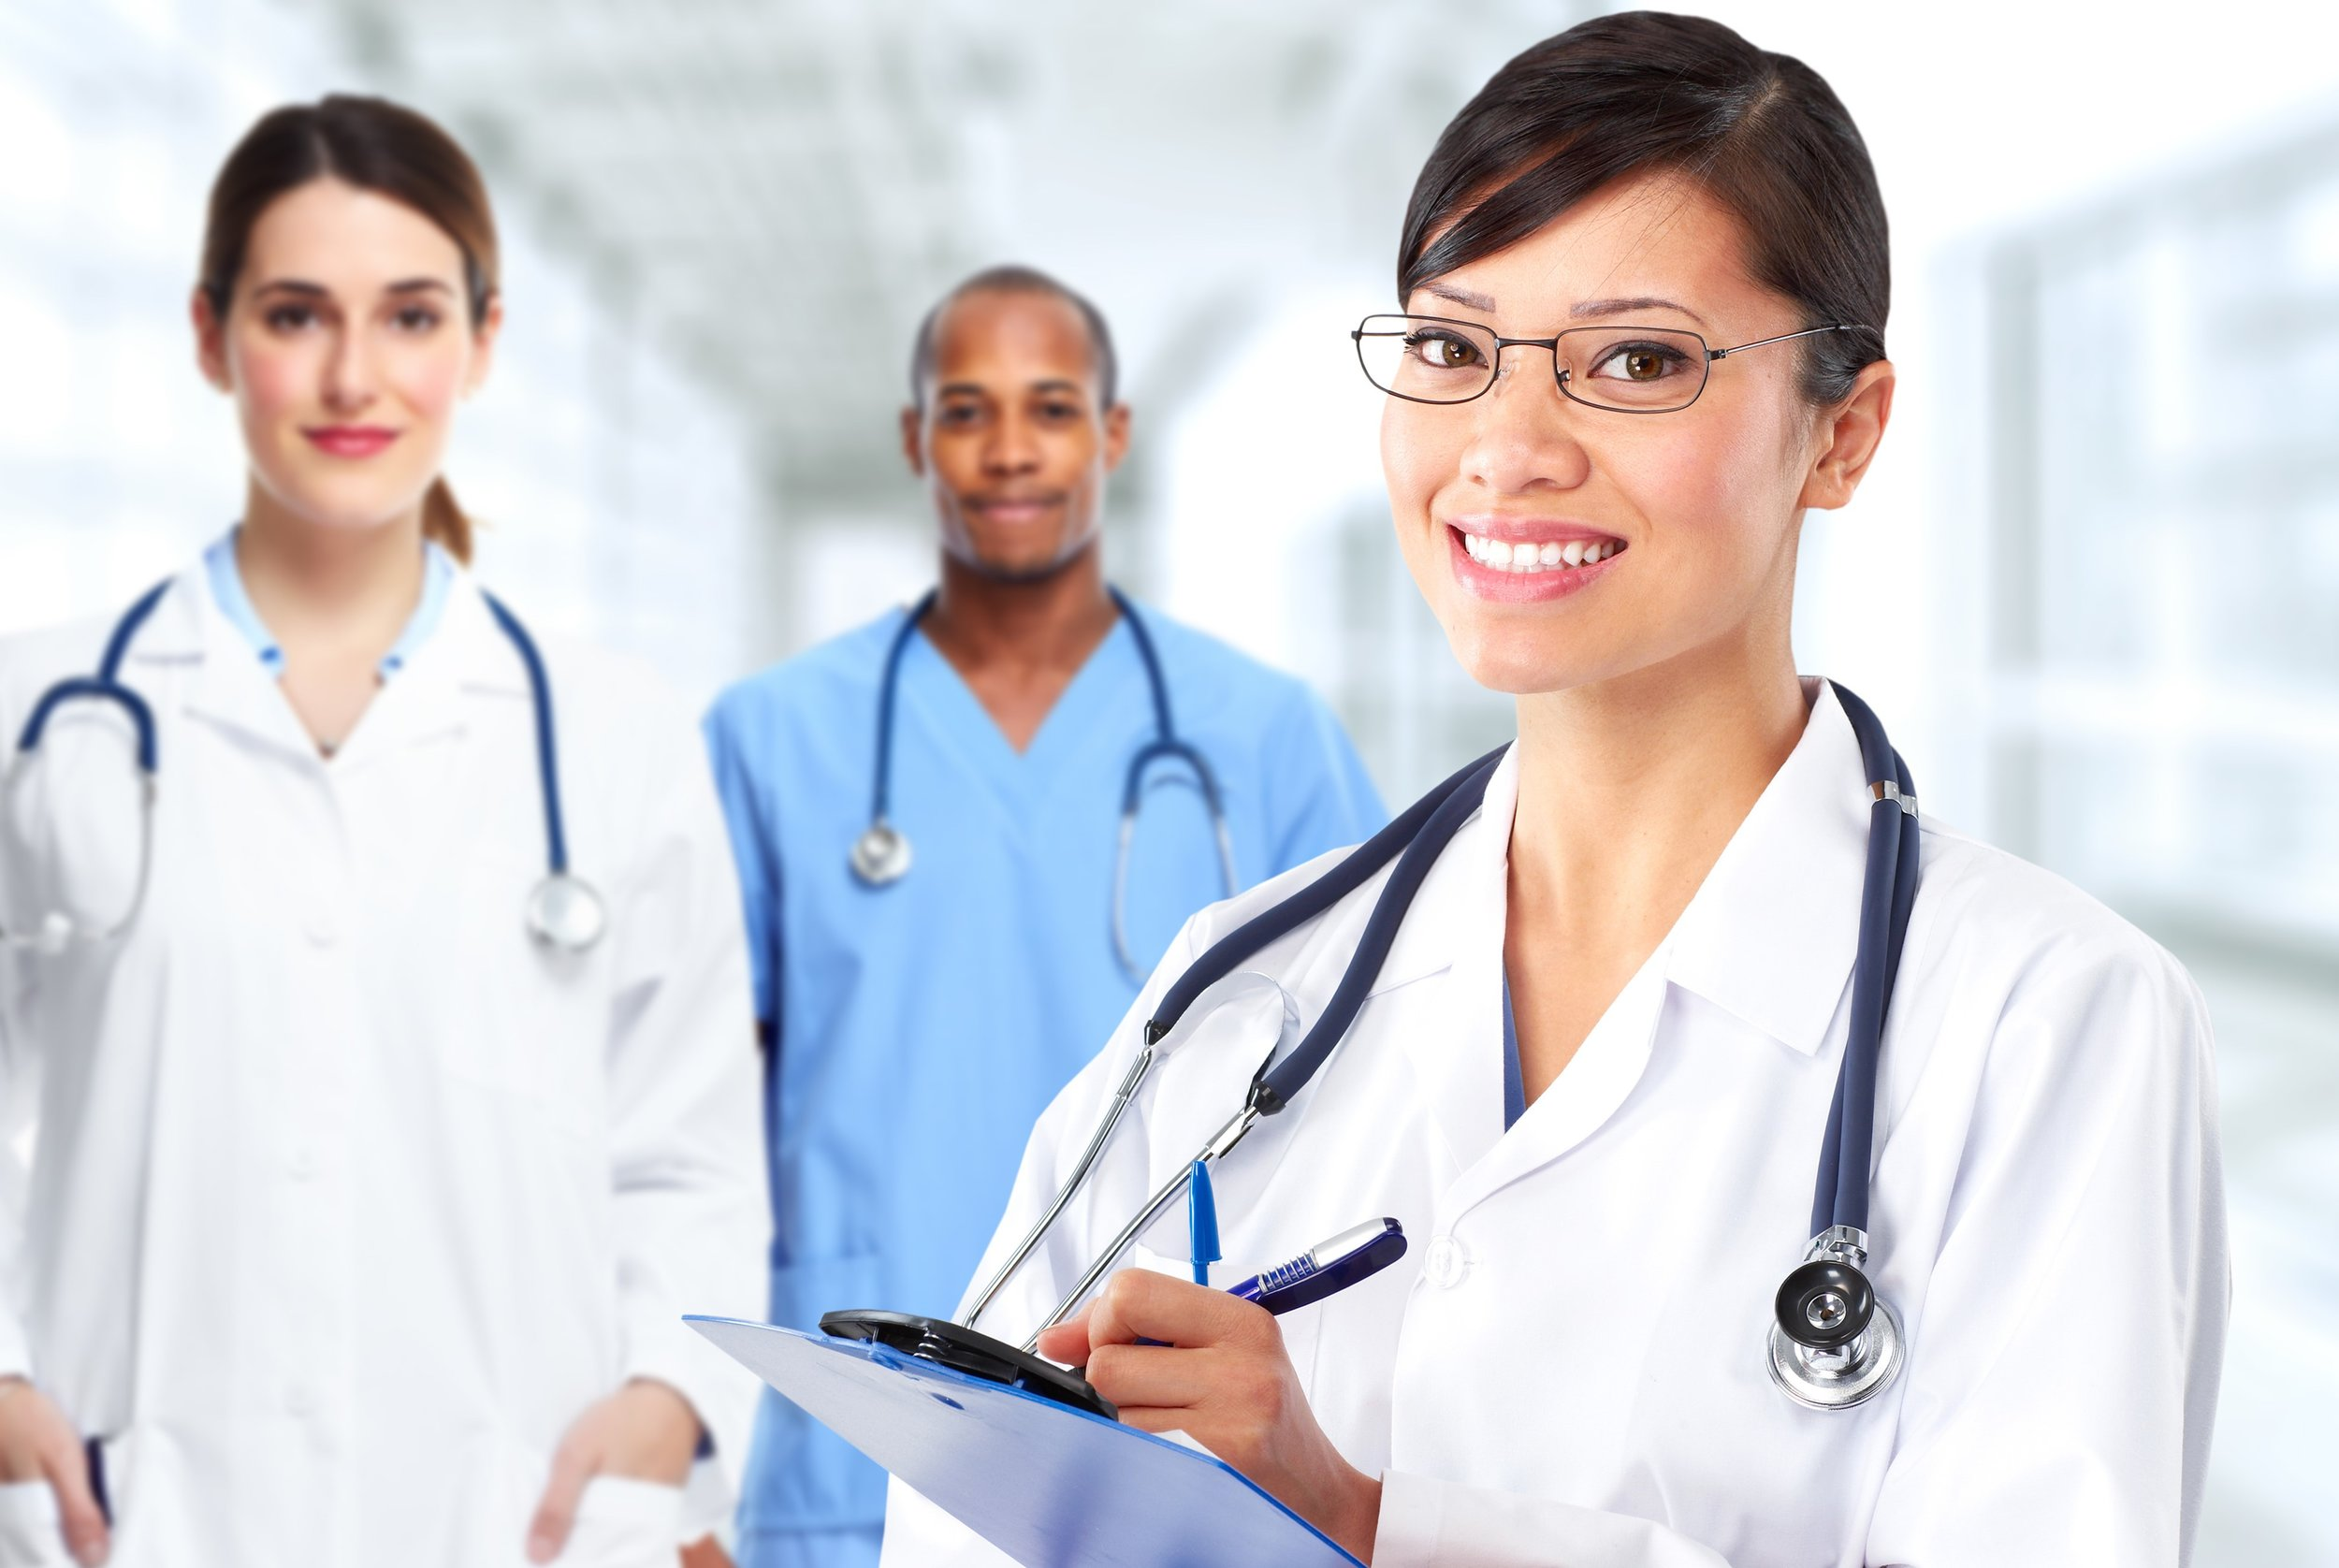 Healthcare Solutions - With decades of experience in healthcare facility development, staffing, and management. We provide comprehensive, cost-effective healthcare services for government and corporate clients throughout the United States.